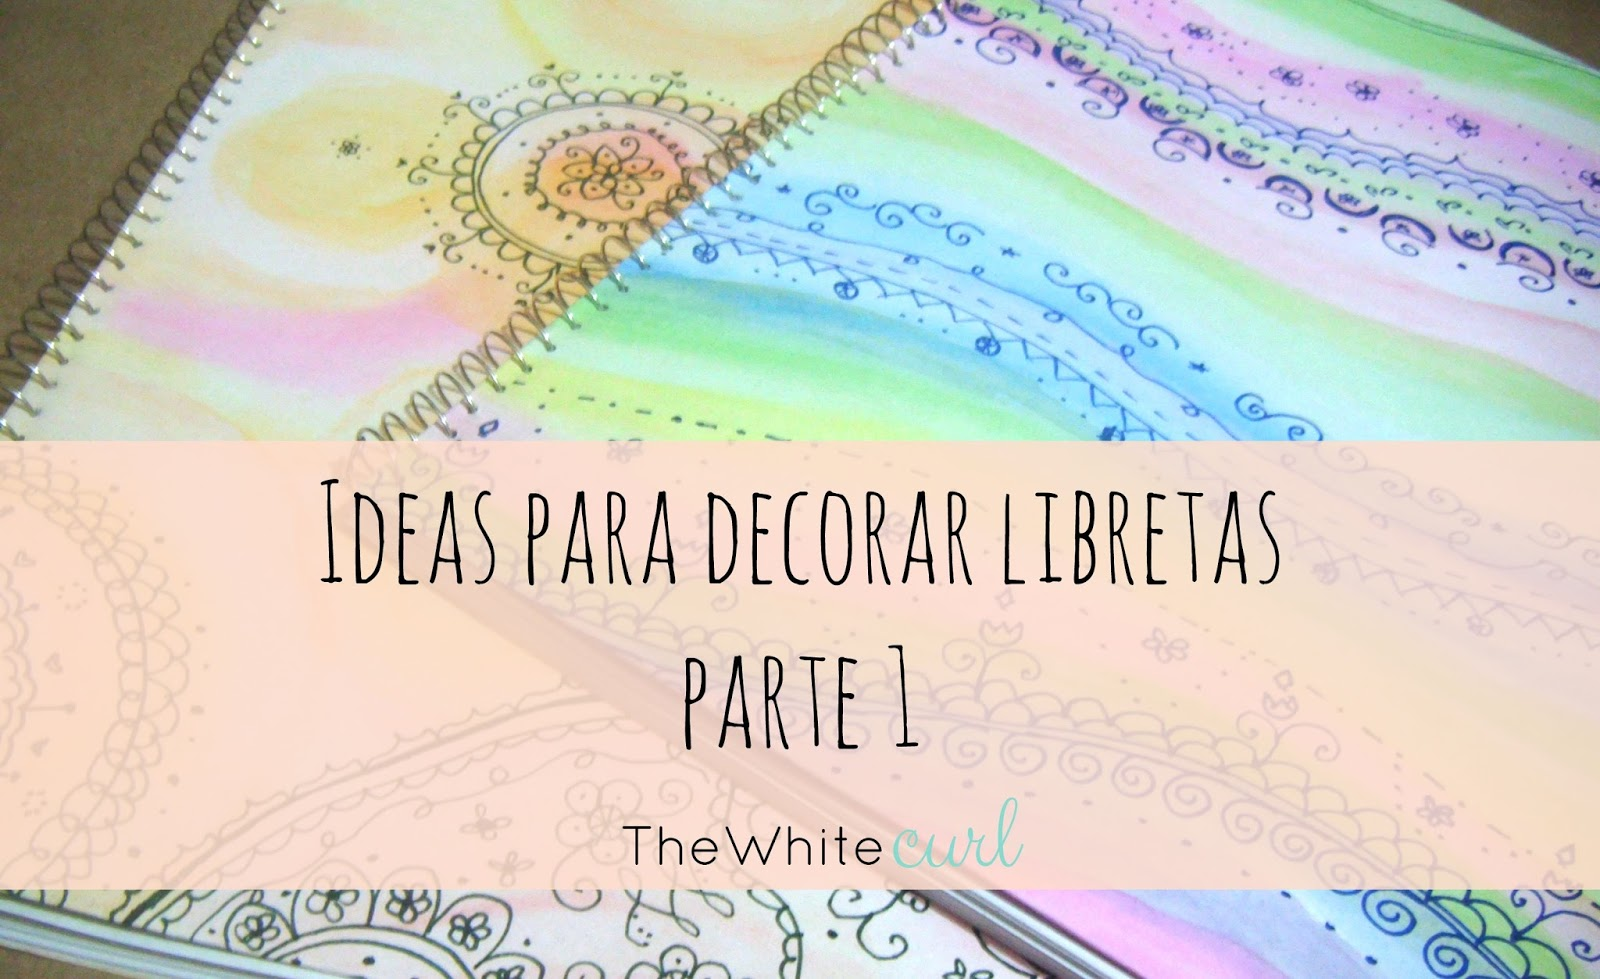 Ideas Para Decorar Tu Libreta Decora Tus Libretas Parte 1 The White Curl